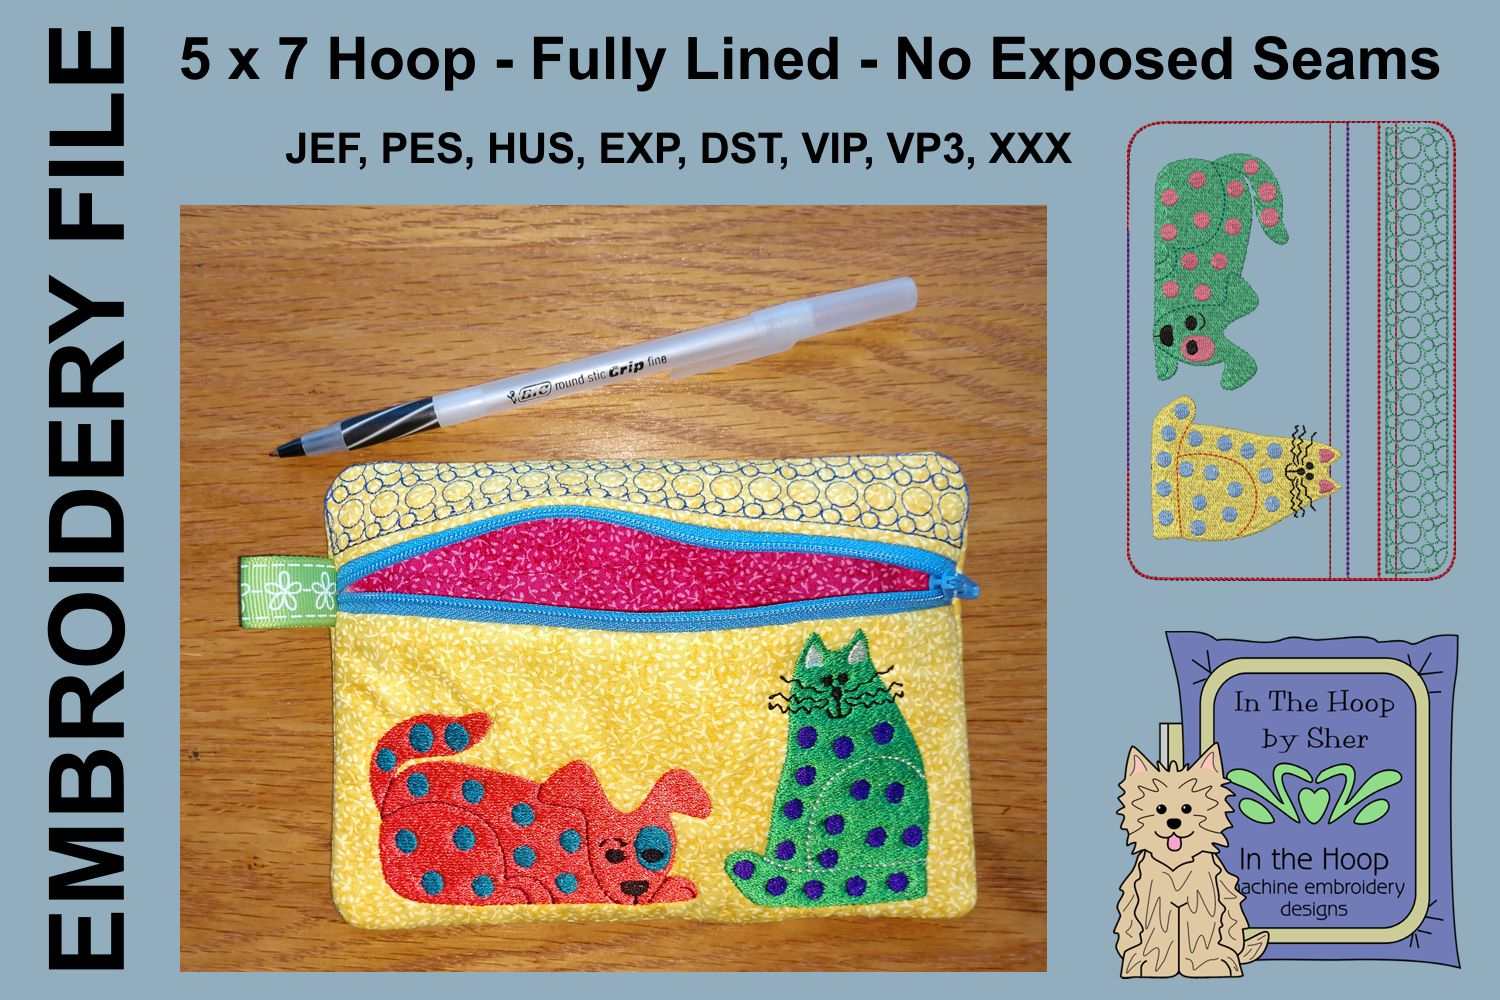 ITH Funky Cat & Dog Zipper Bag - Fully Lined, 5X7 HOOP example image 2